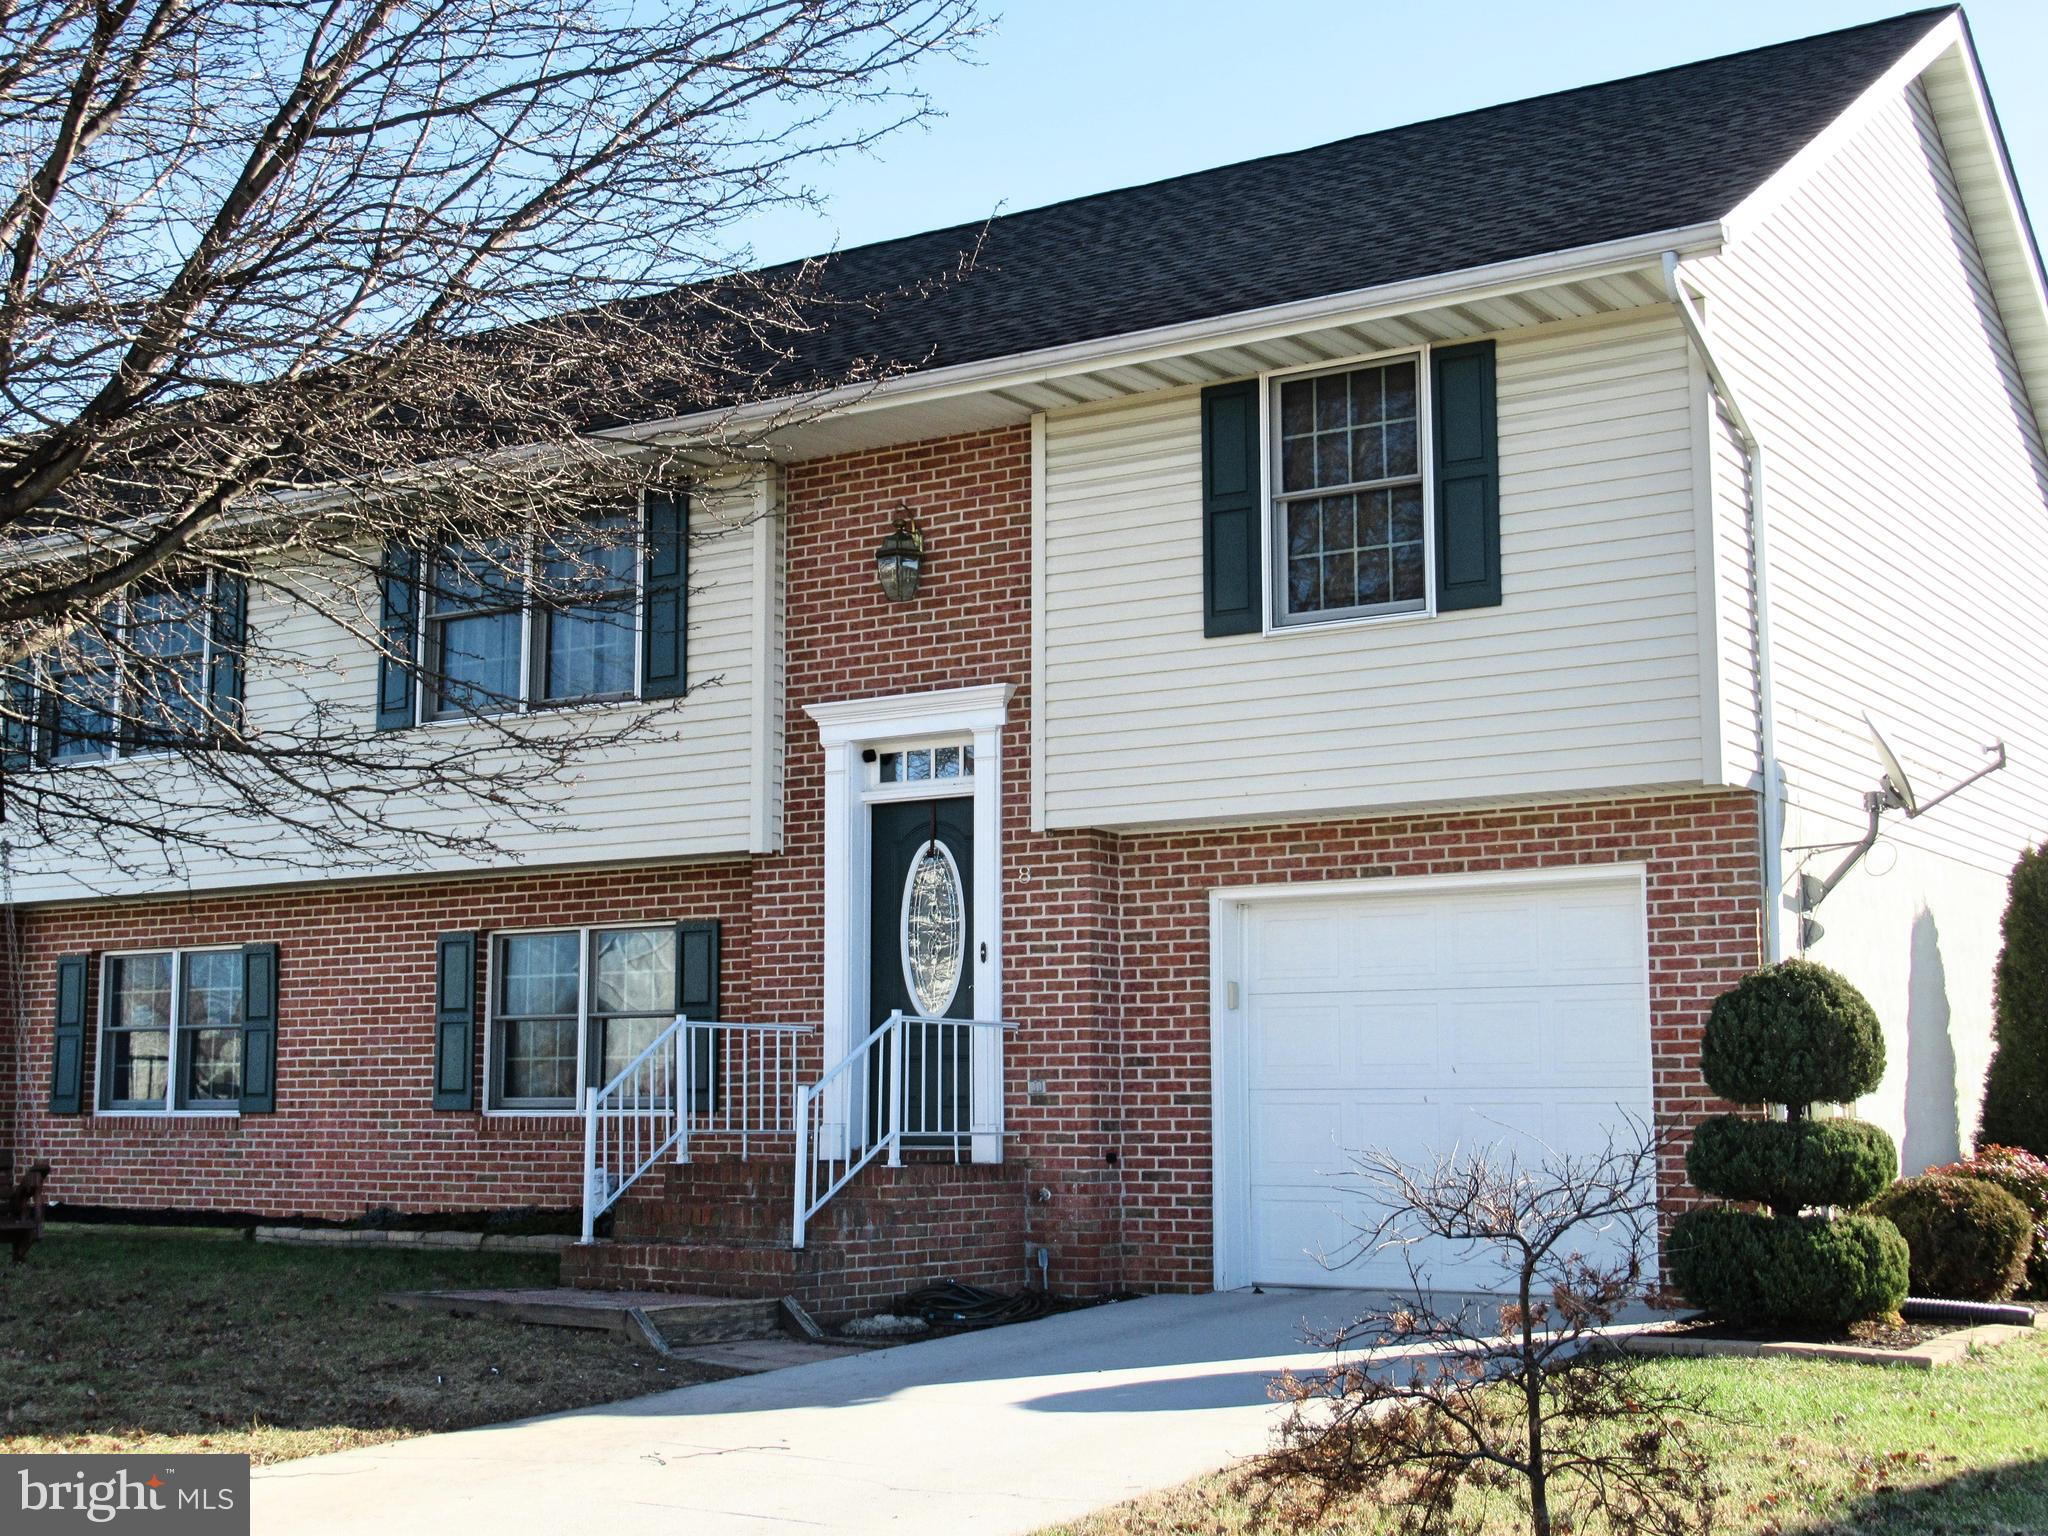 8 SQUIRE CIRCLE, MCSHERRYSTOWN, PA 17344